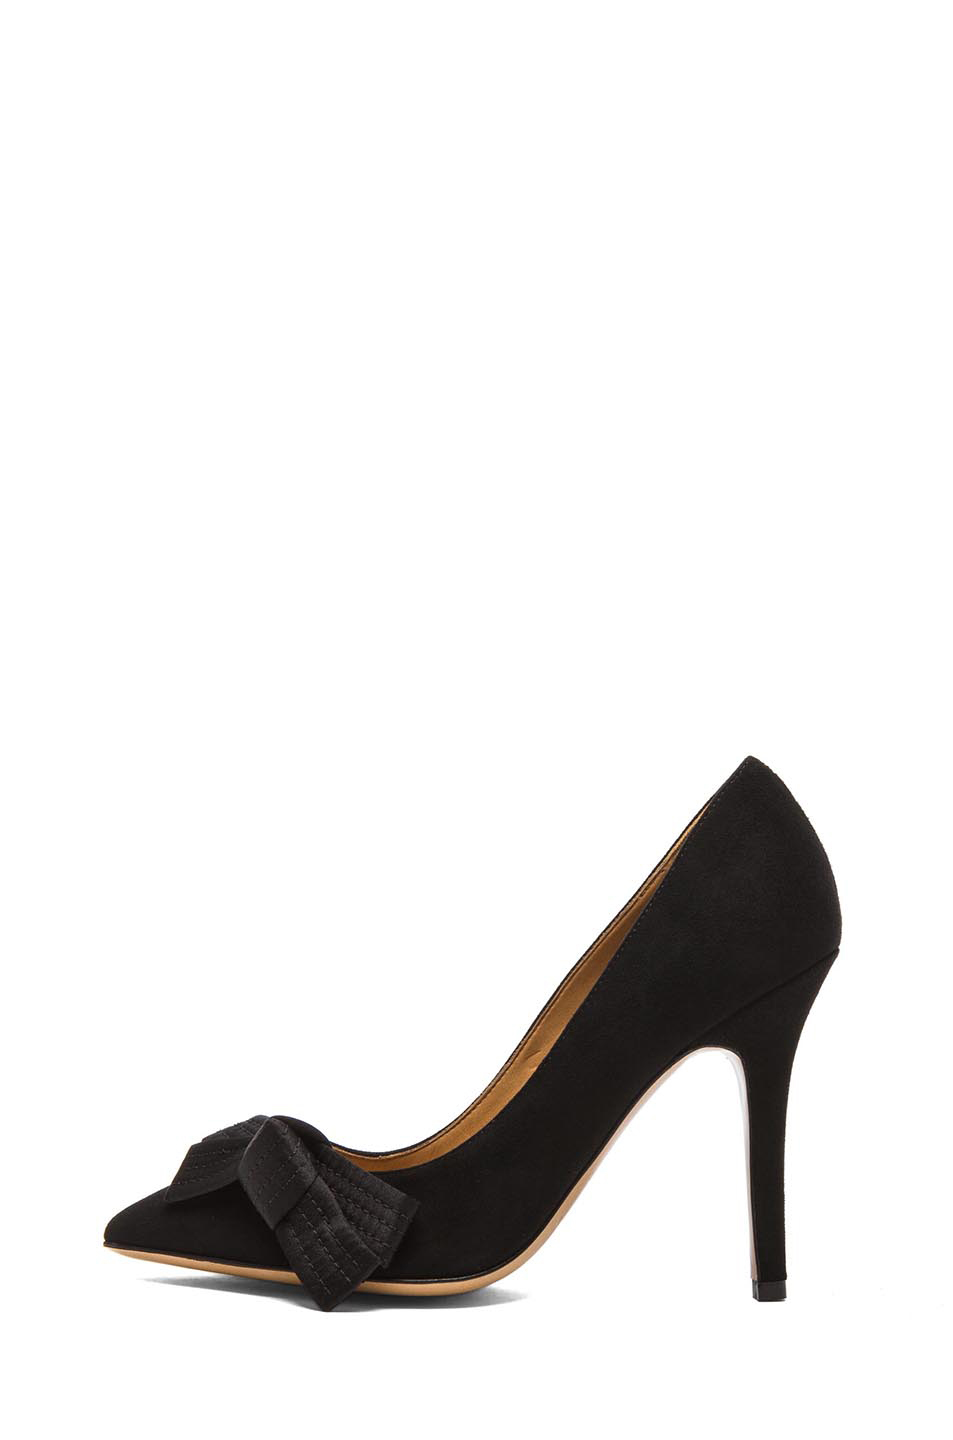 Isabel Marant|Poppy Pumps in Black